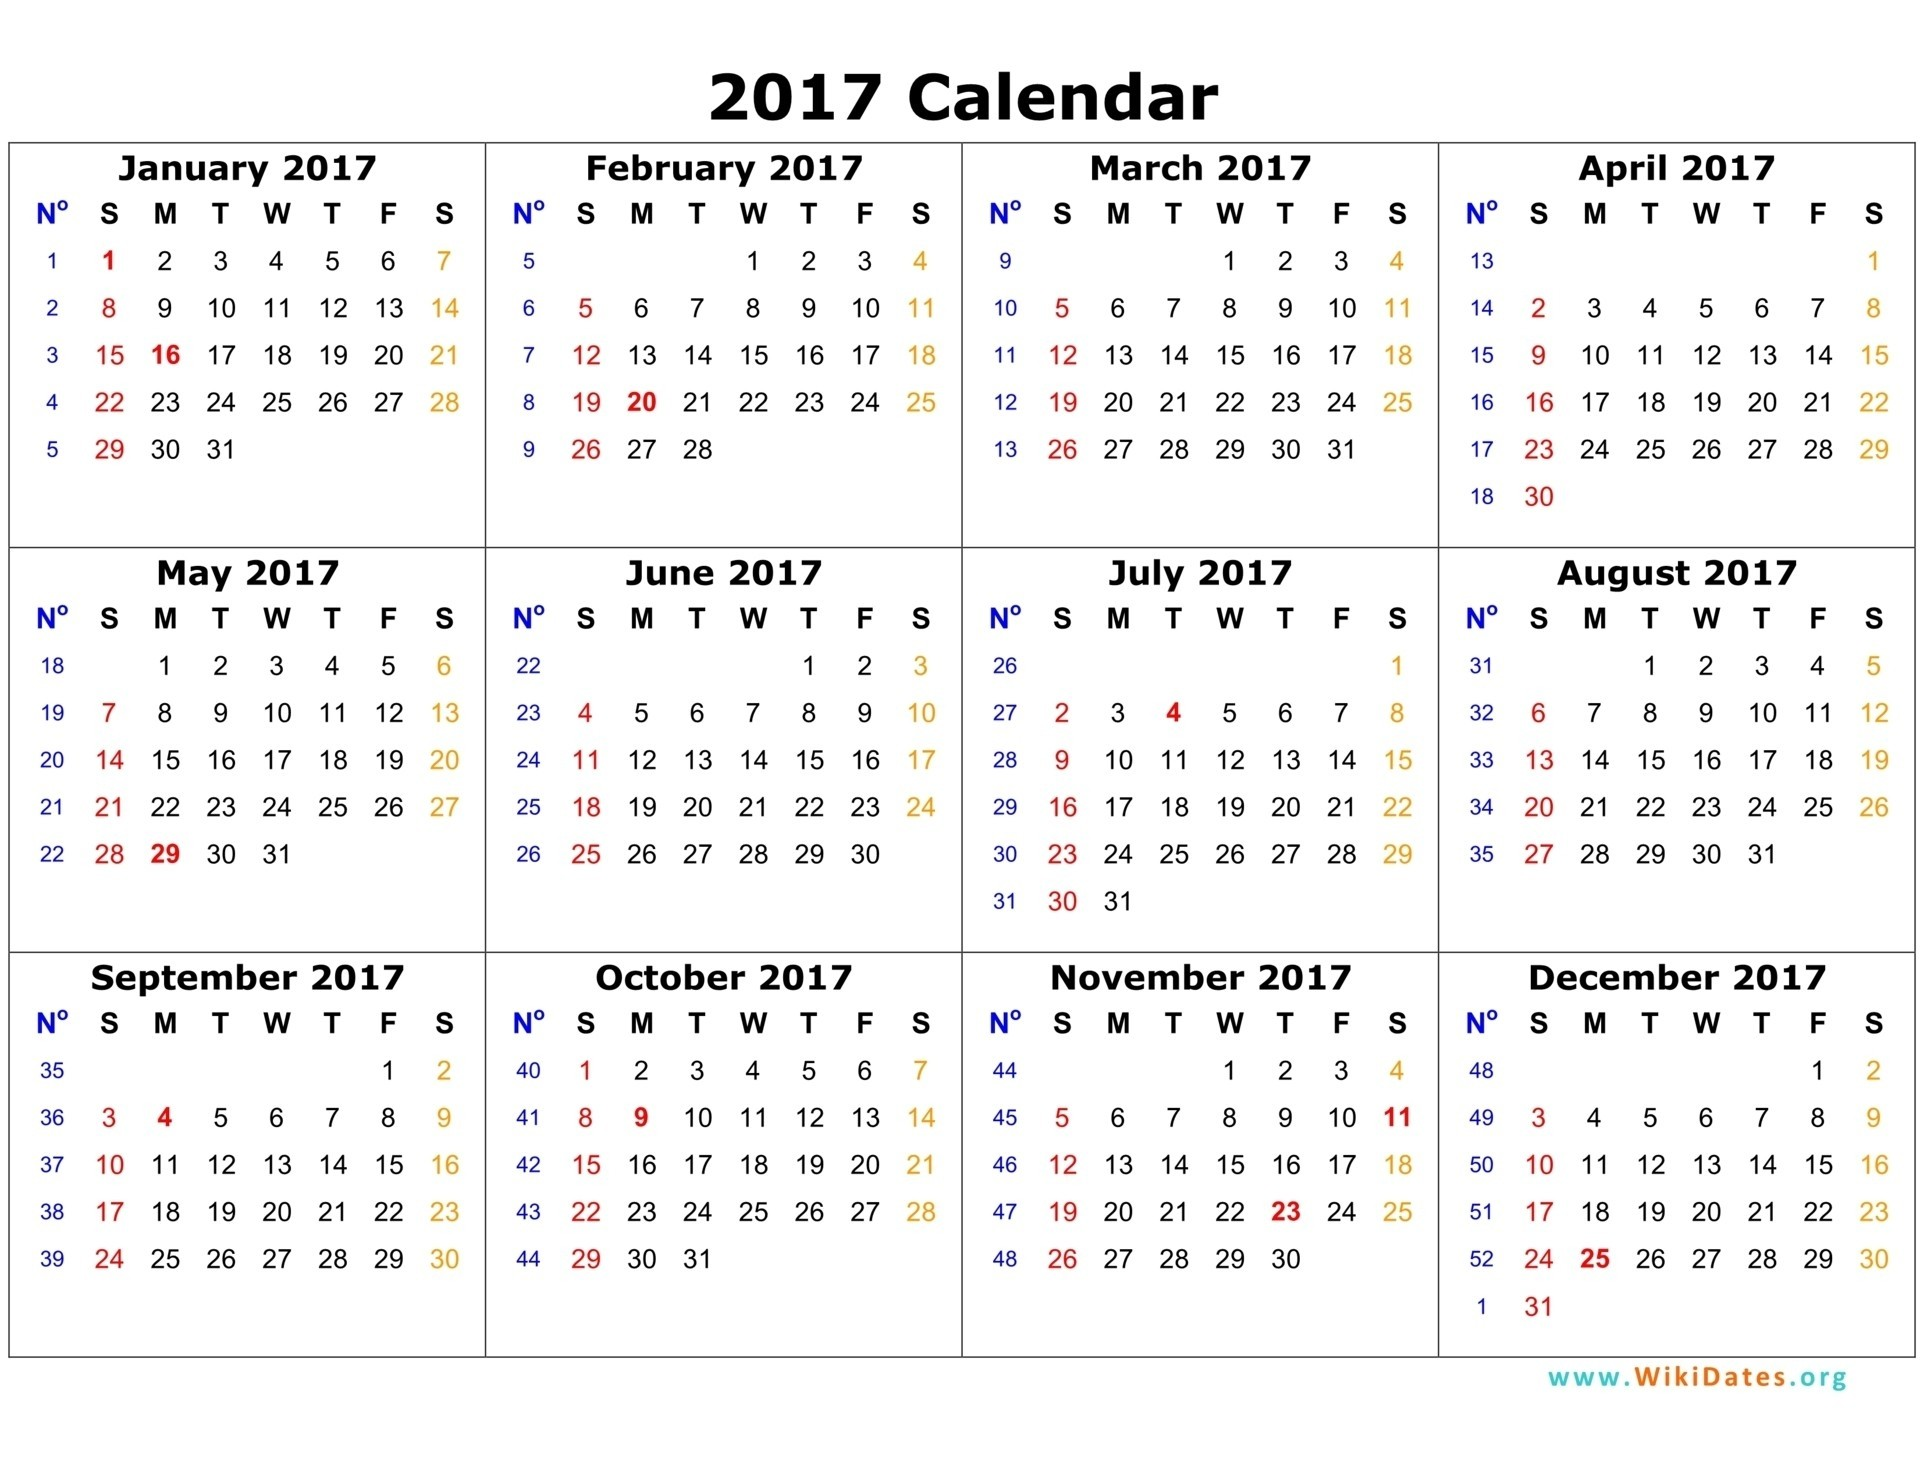 2017 calendar pdf free dating siderco 10